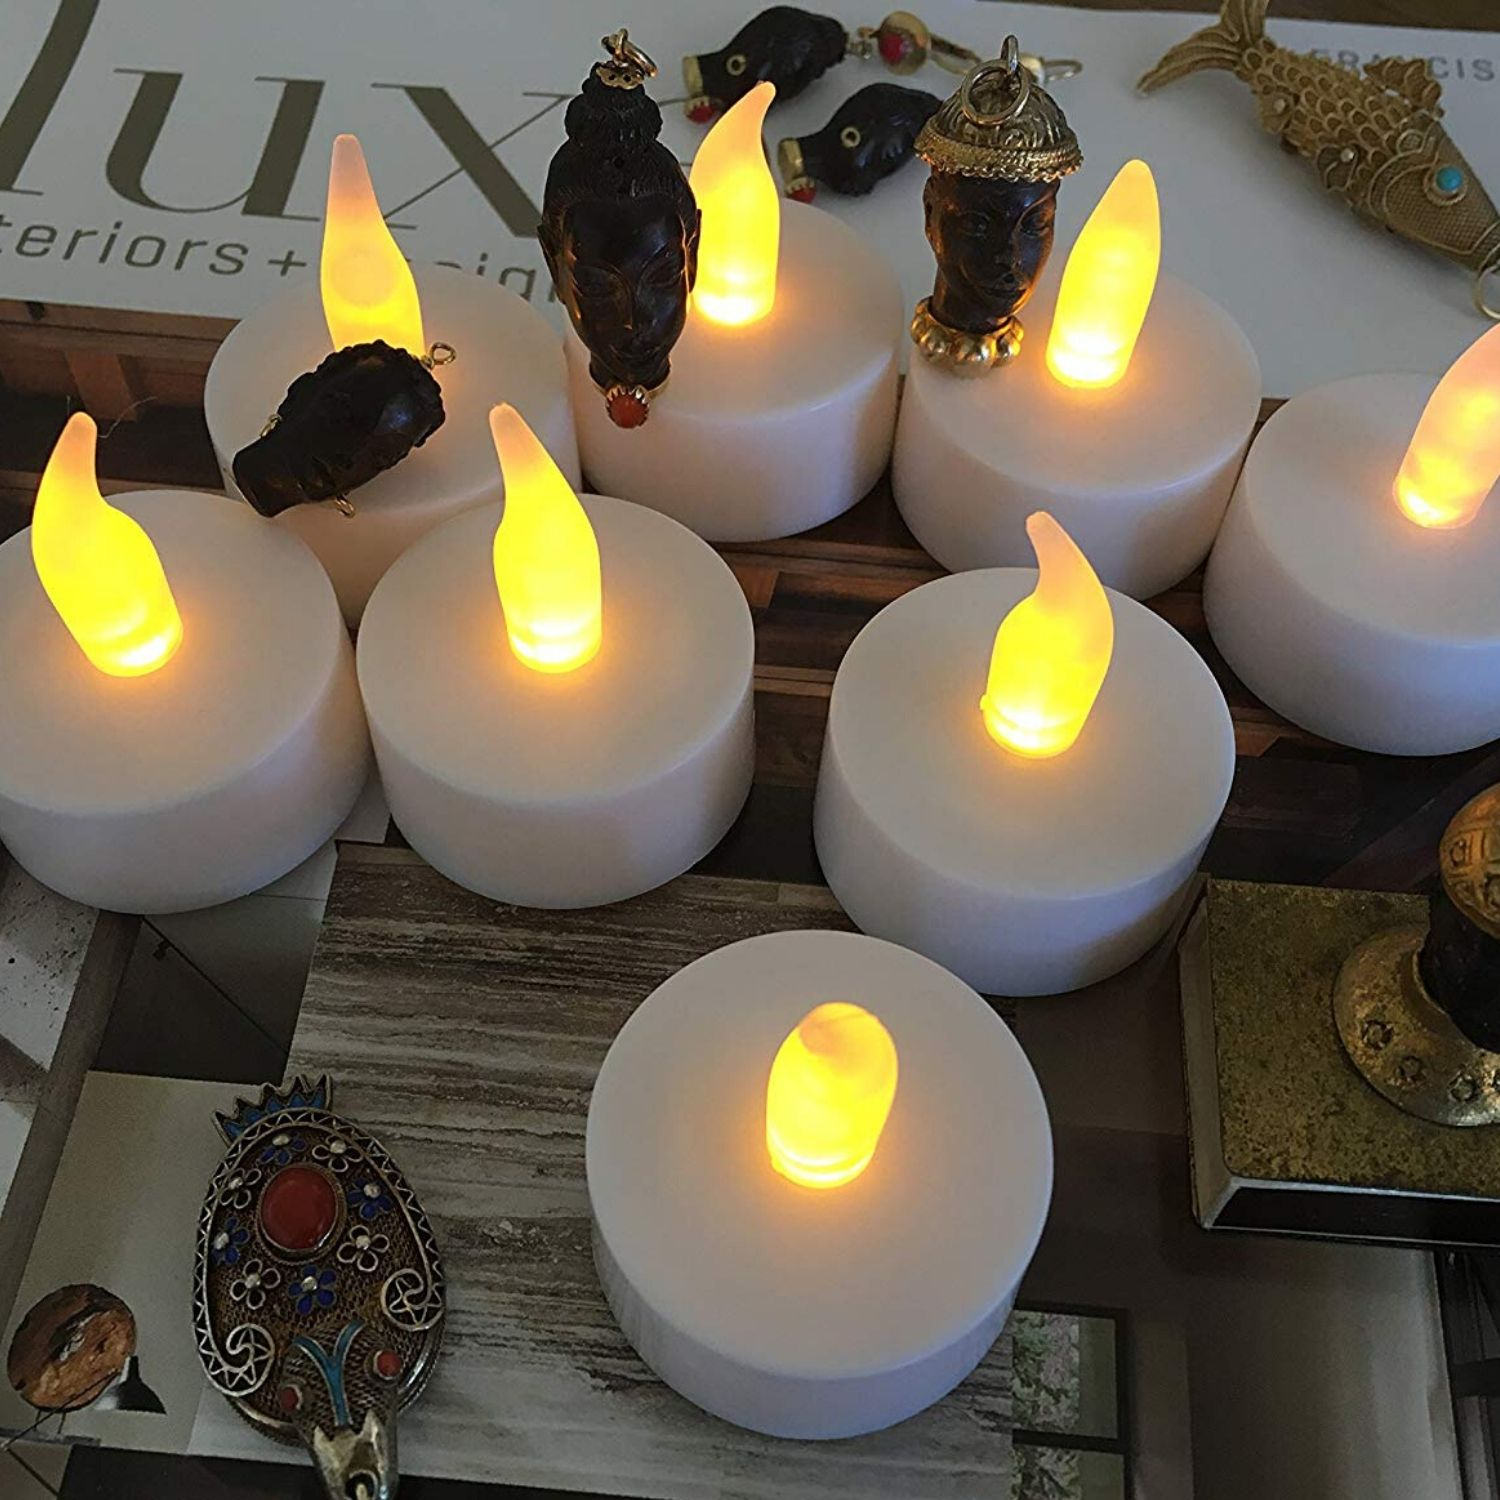 Flameless LED Tea Light Candles, Vivii Battery-Powered Unscented LED Tealight Candles, Fake Candles